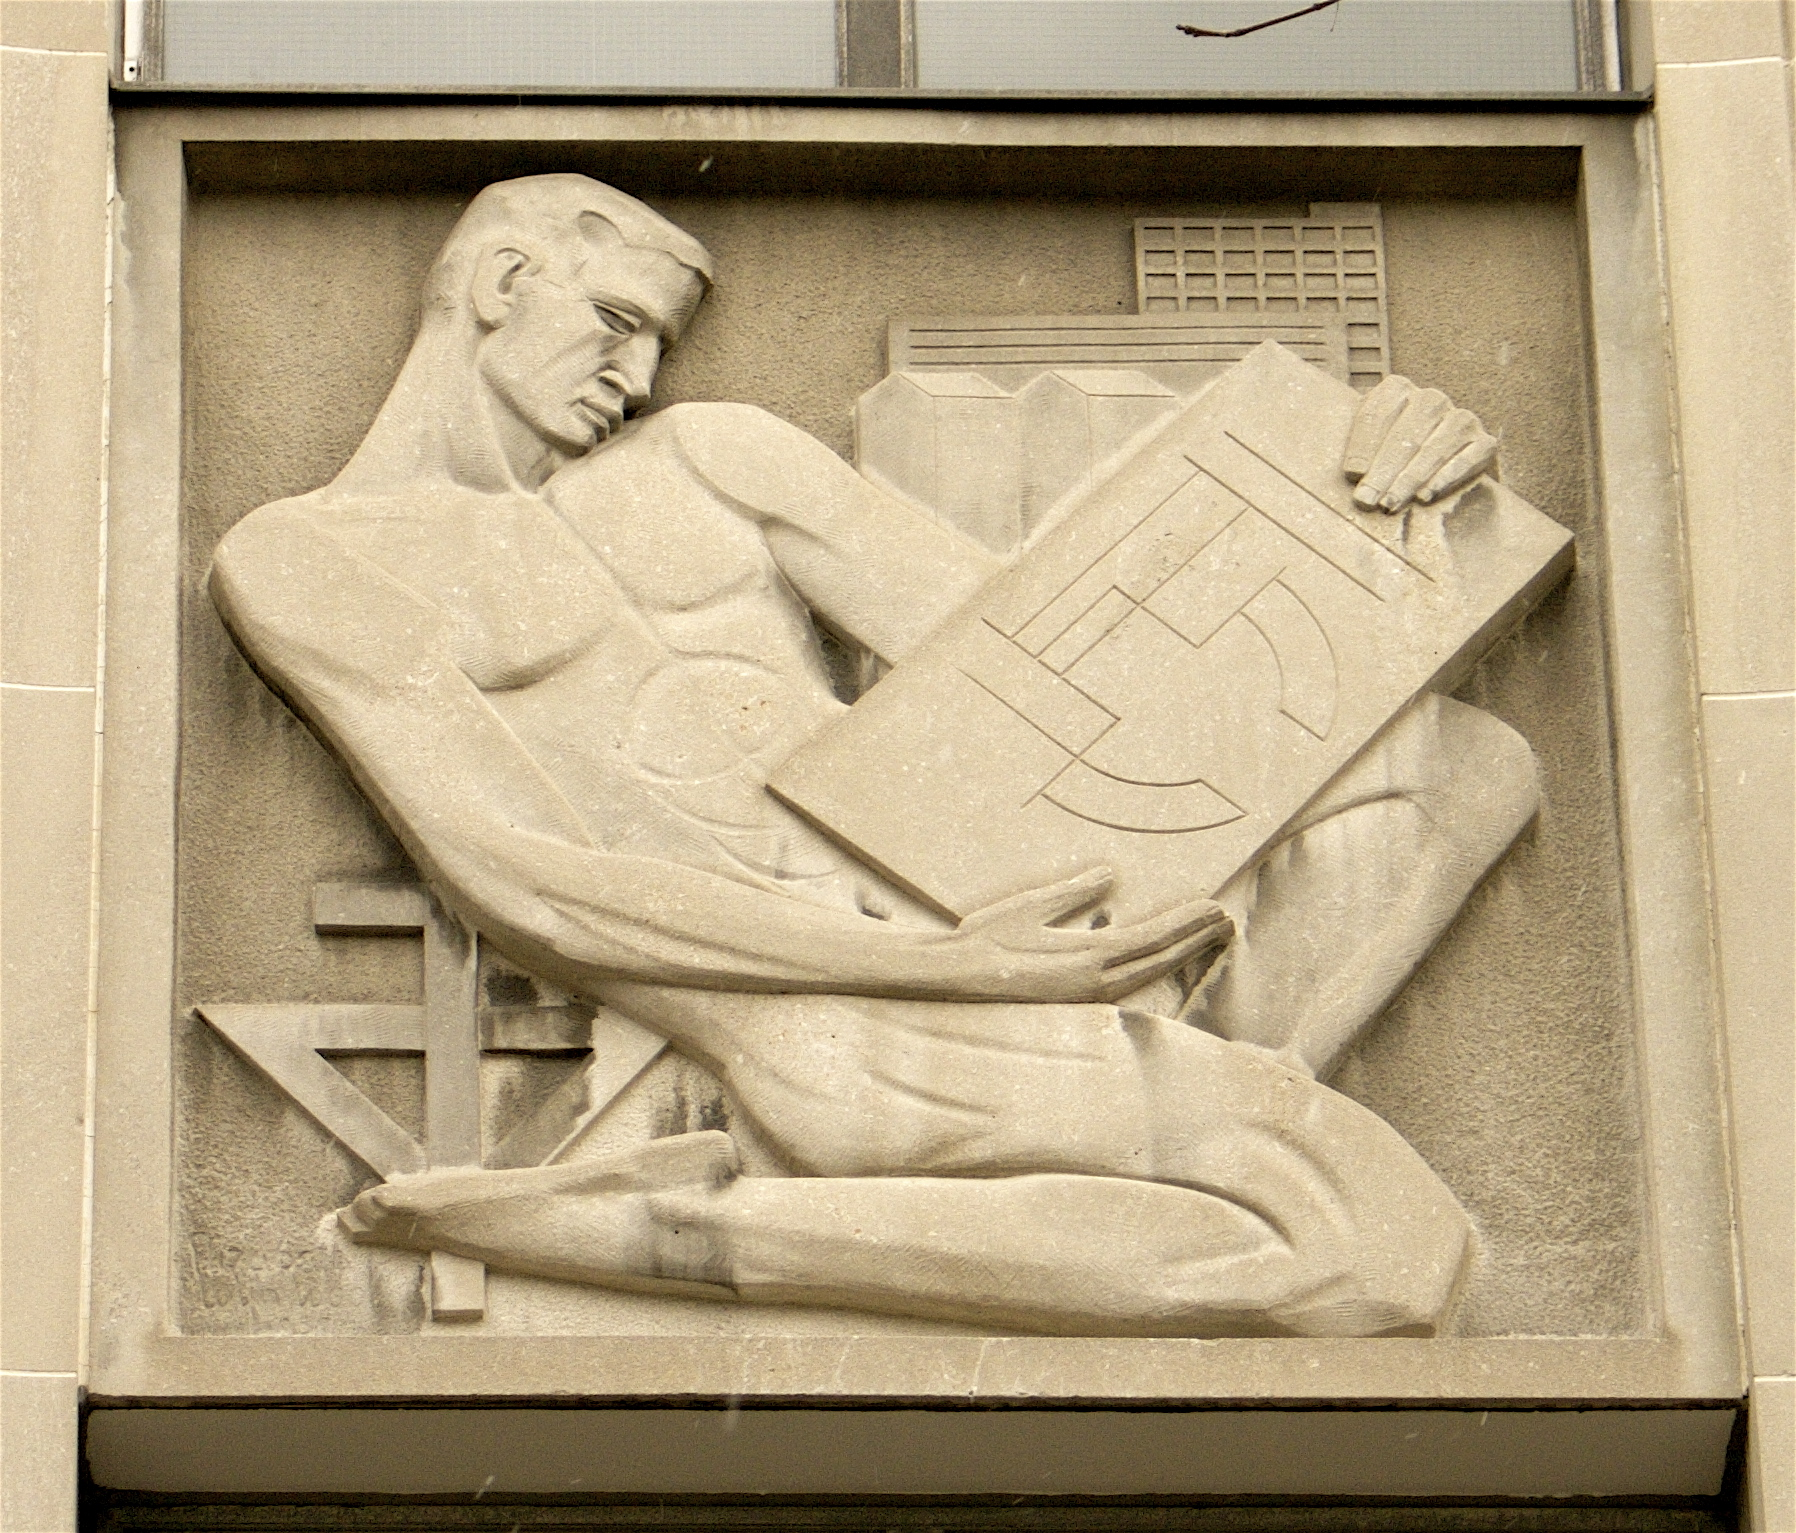 File:Bas Relief at Ryerson in Toronto.jpg - Wikimedia Commons